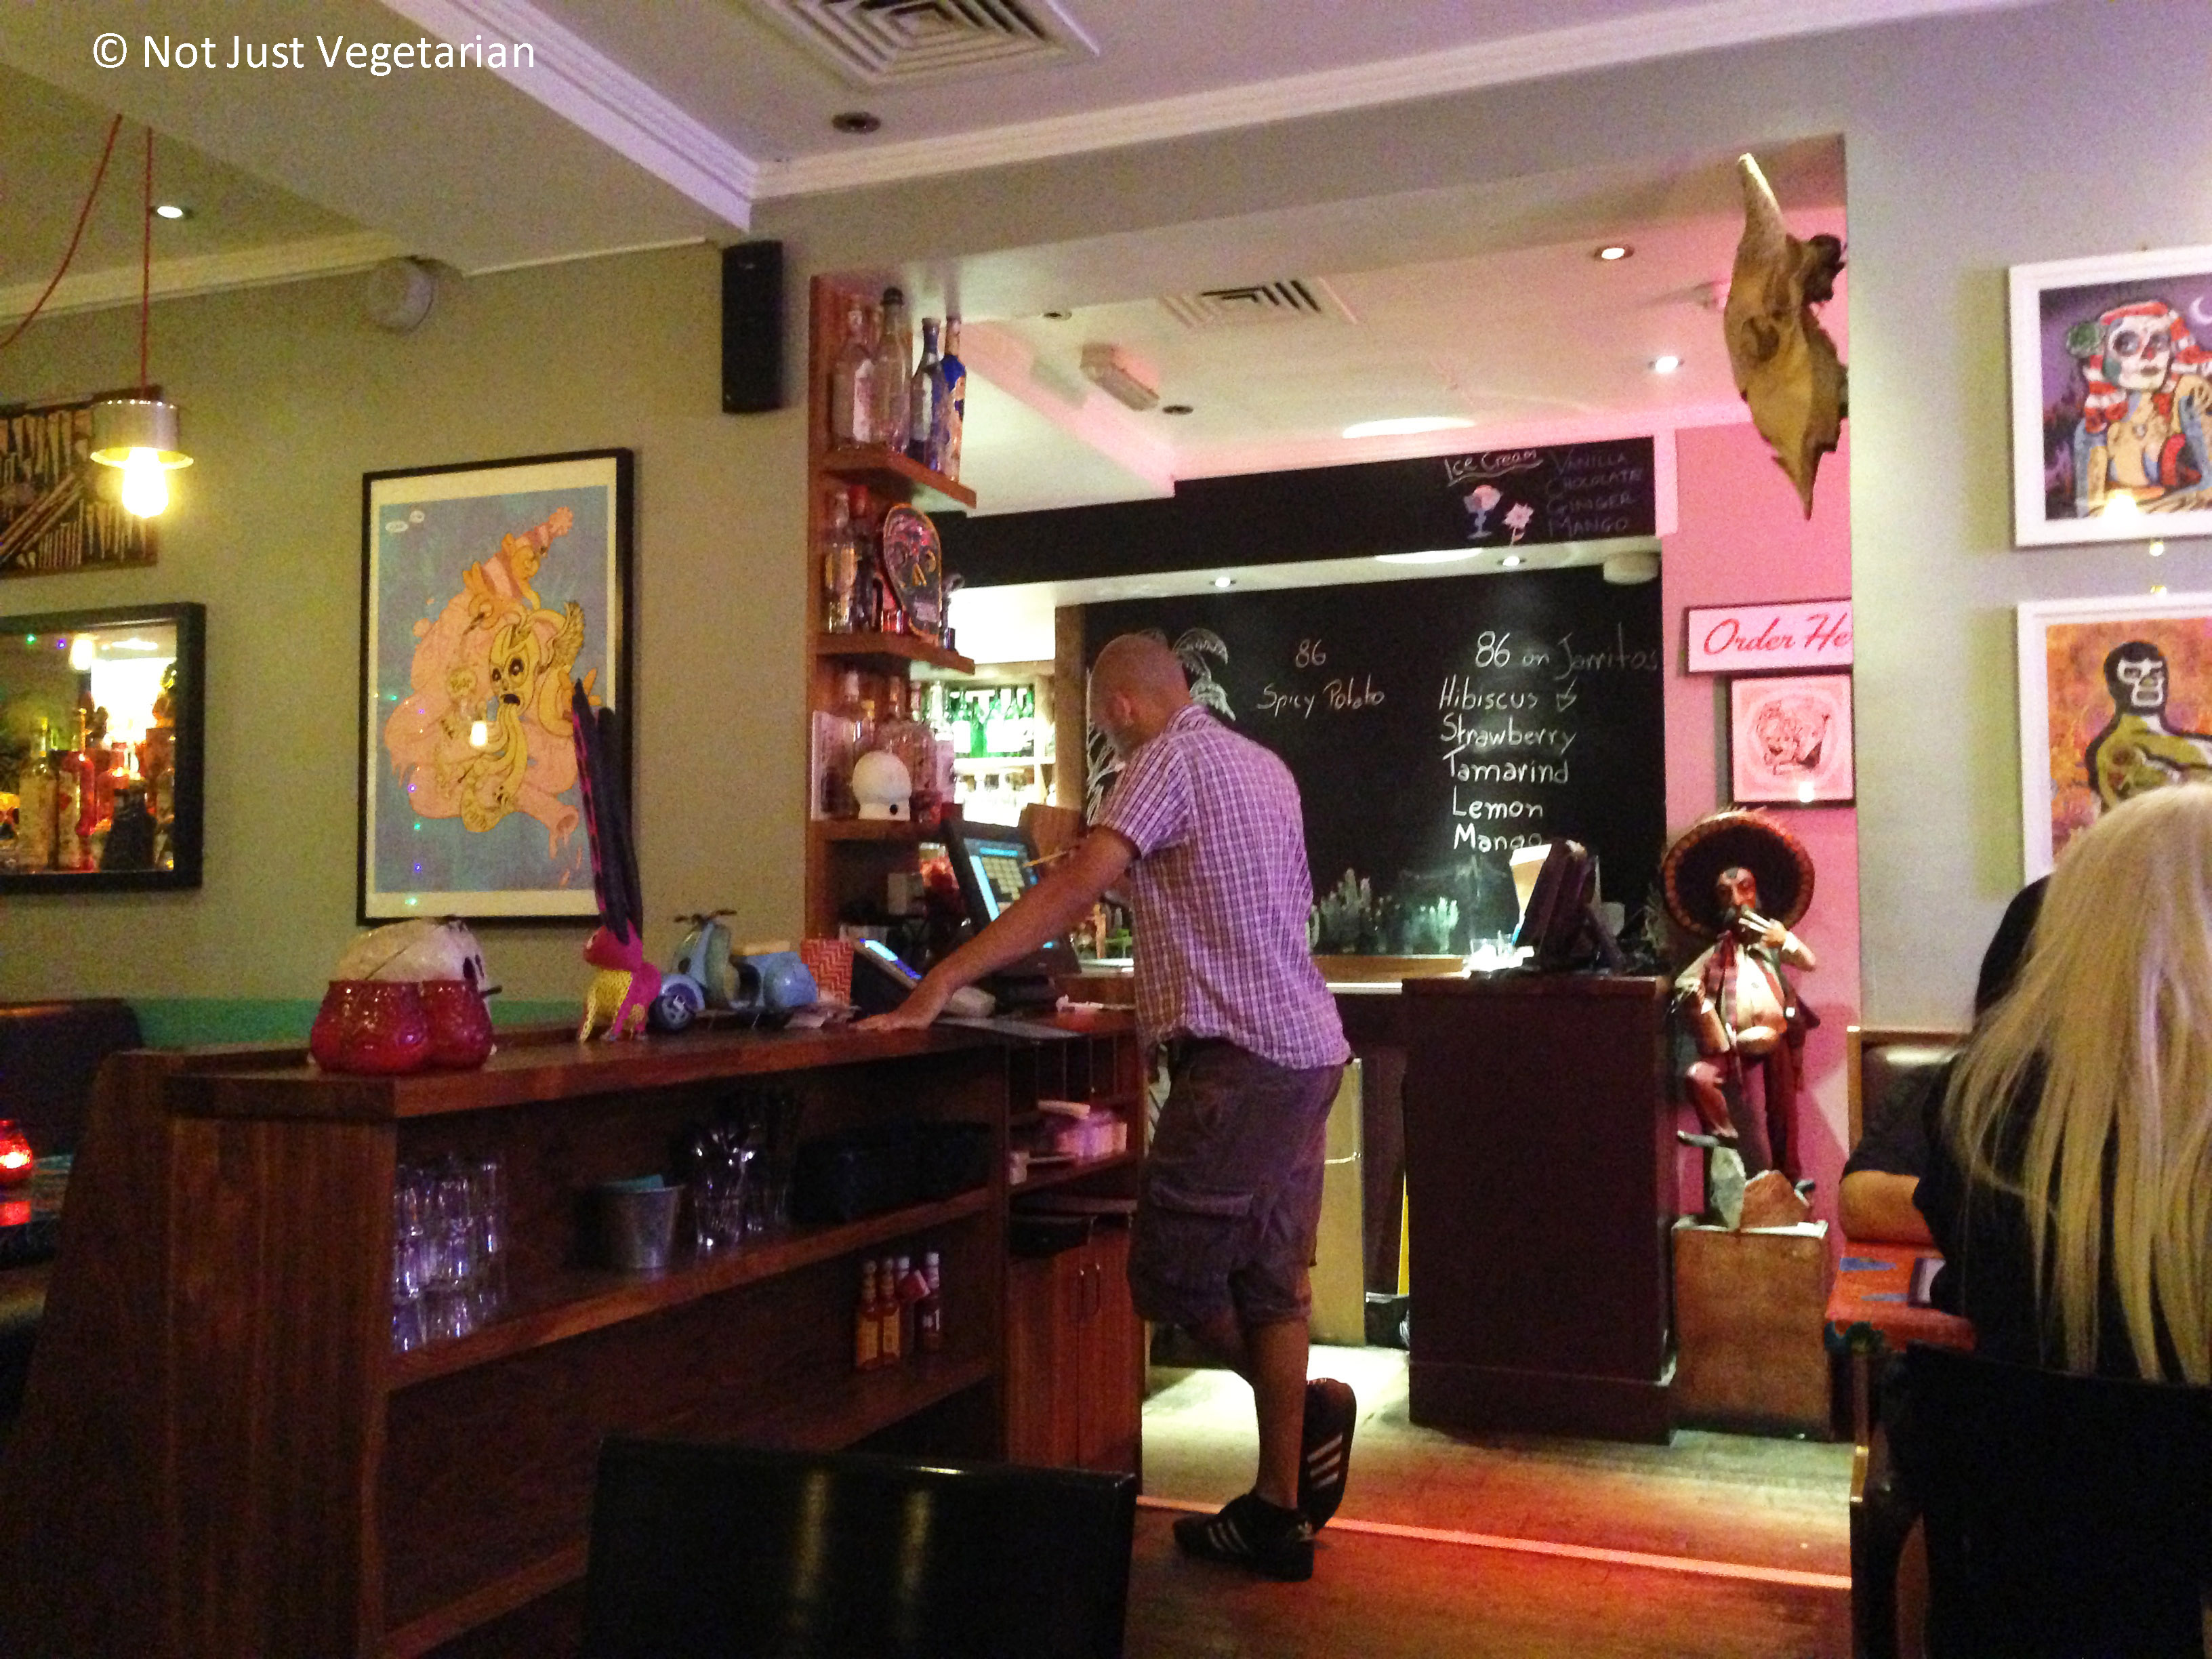 El Camion offers late night Mexican in Soho, London   Not Just ...